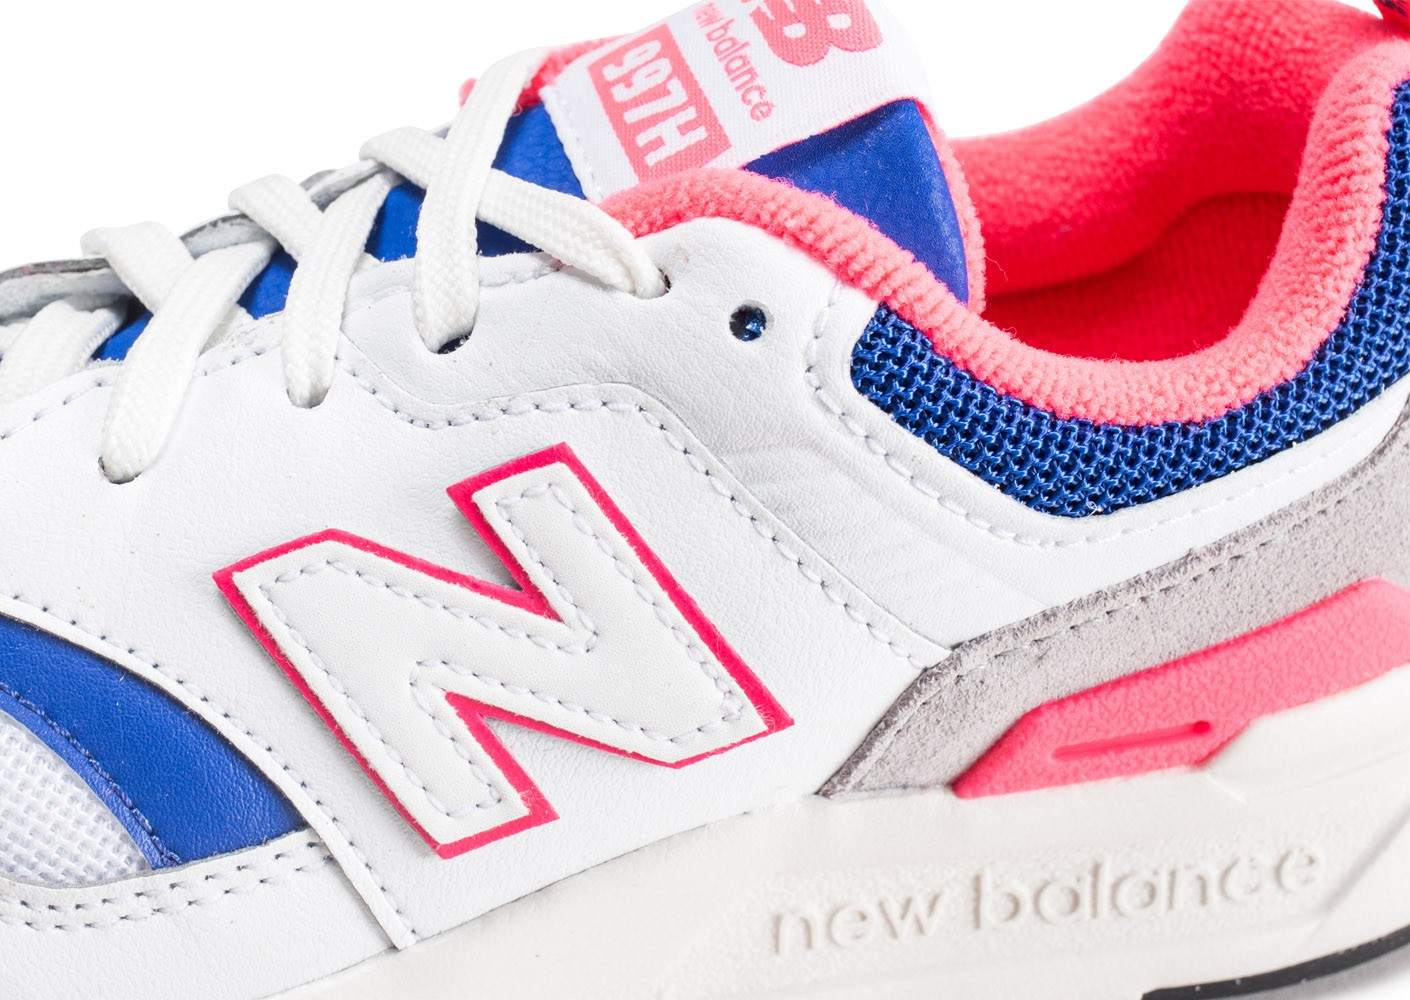 New Balance 997 Baskets Rose et blanc